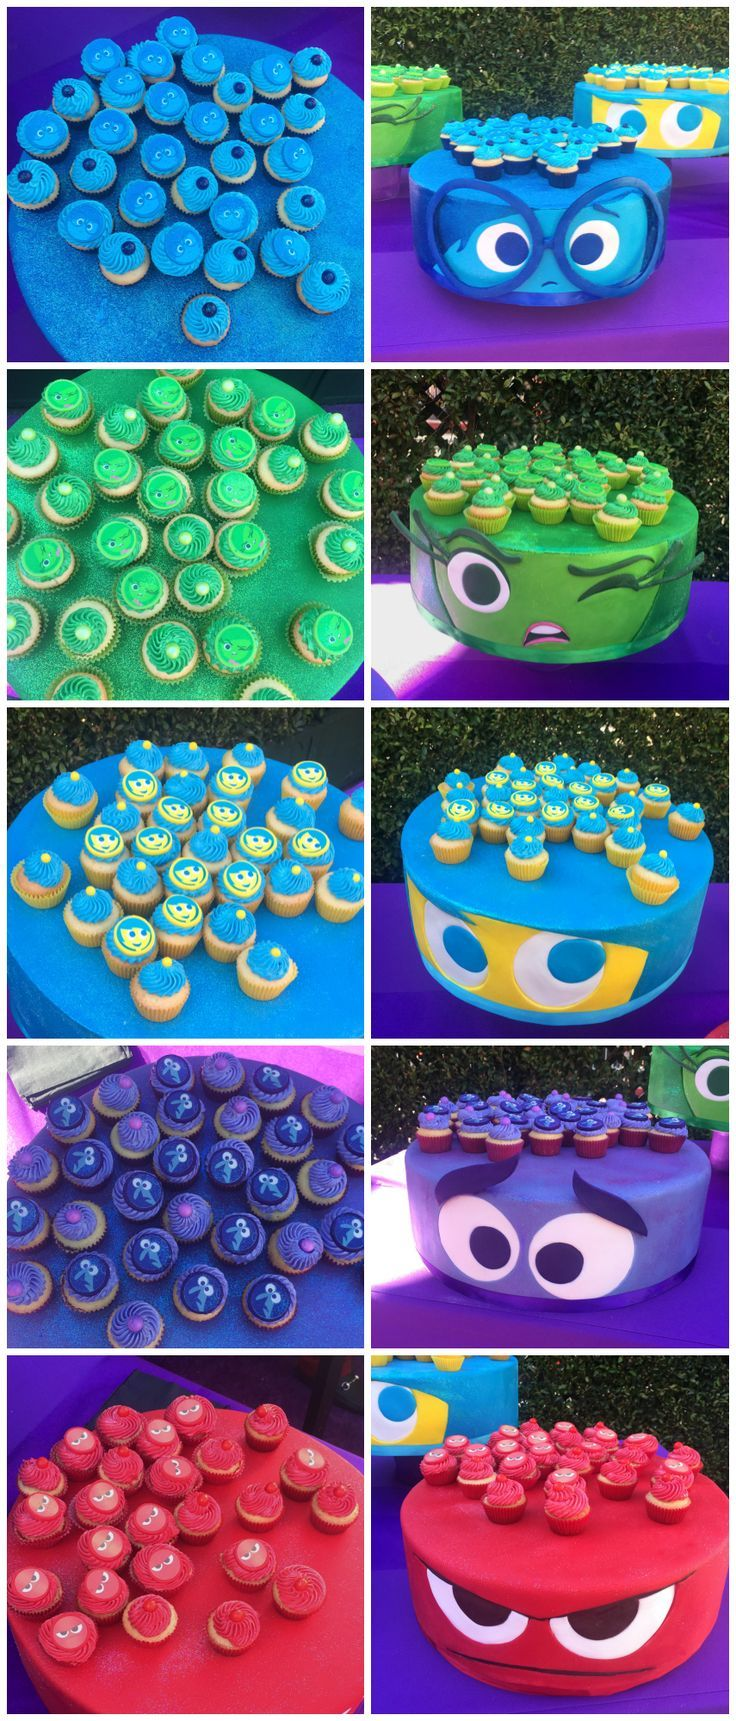 Inside Out Cupcake recipe and display from the Disney Pixar movie with Joy, Sadness, Anger, Fear and Disgust